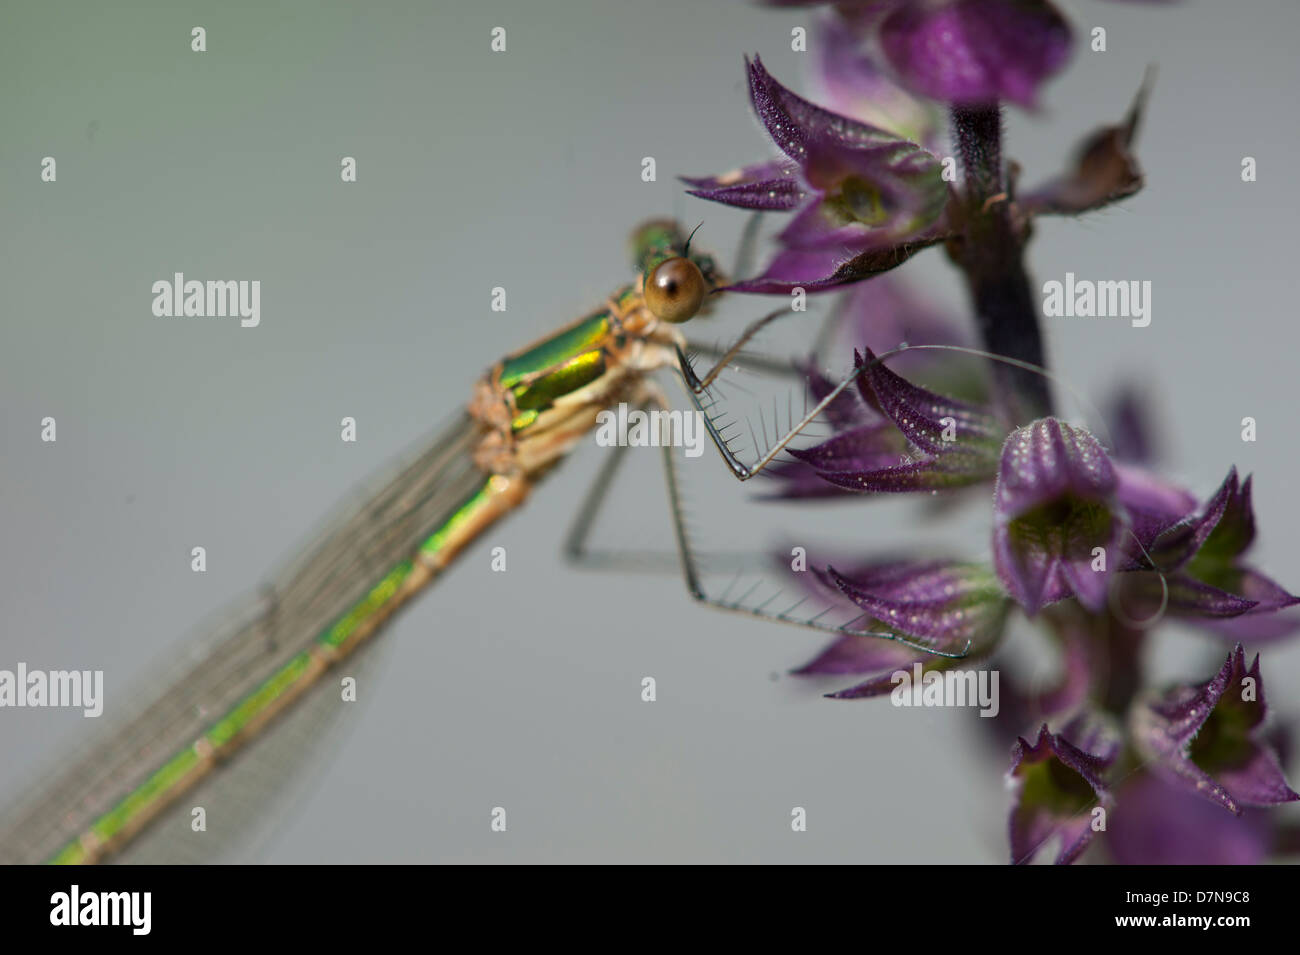 (Dragonflies) Odonata is an order of carnivorous insects - Stock Image